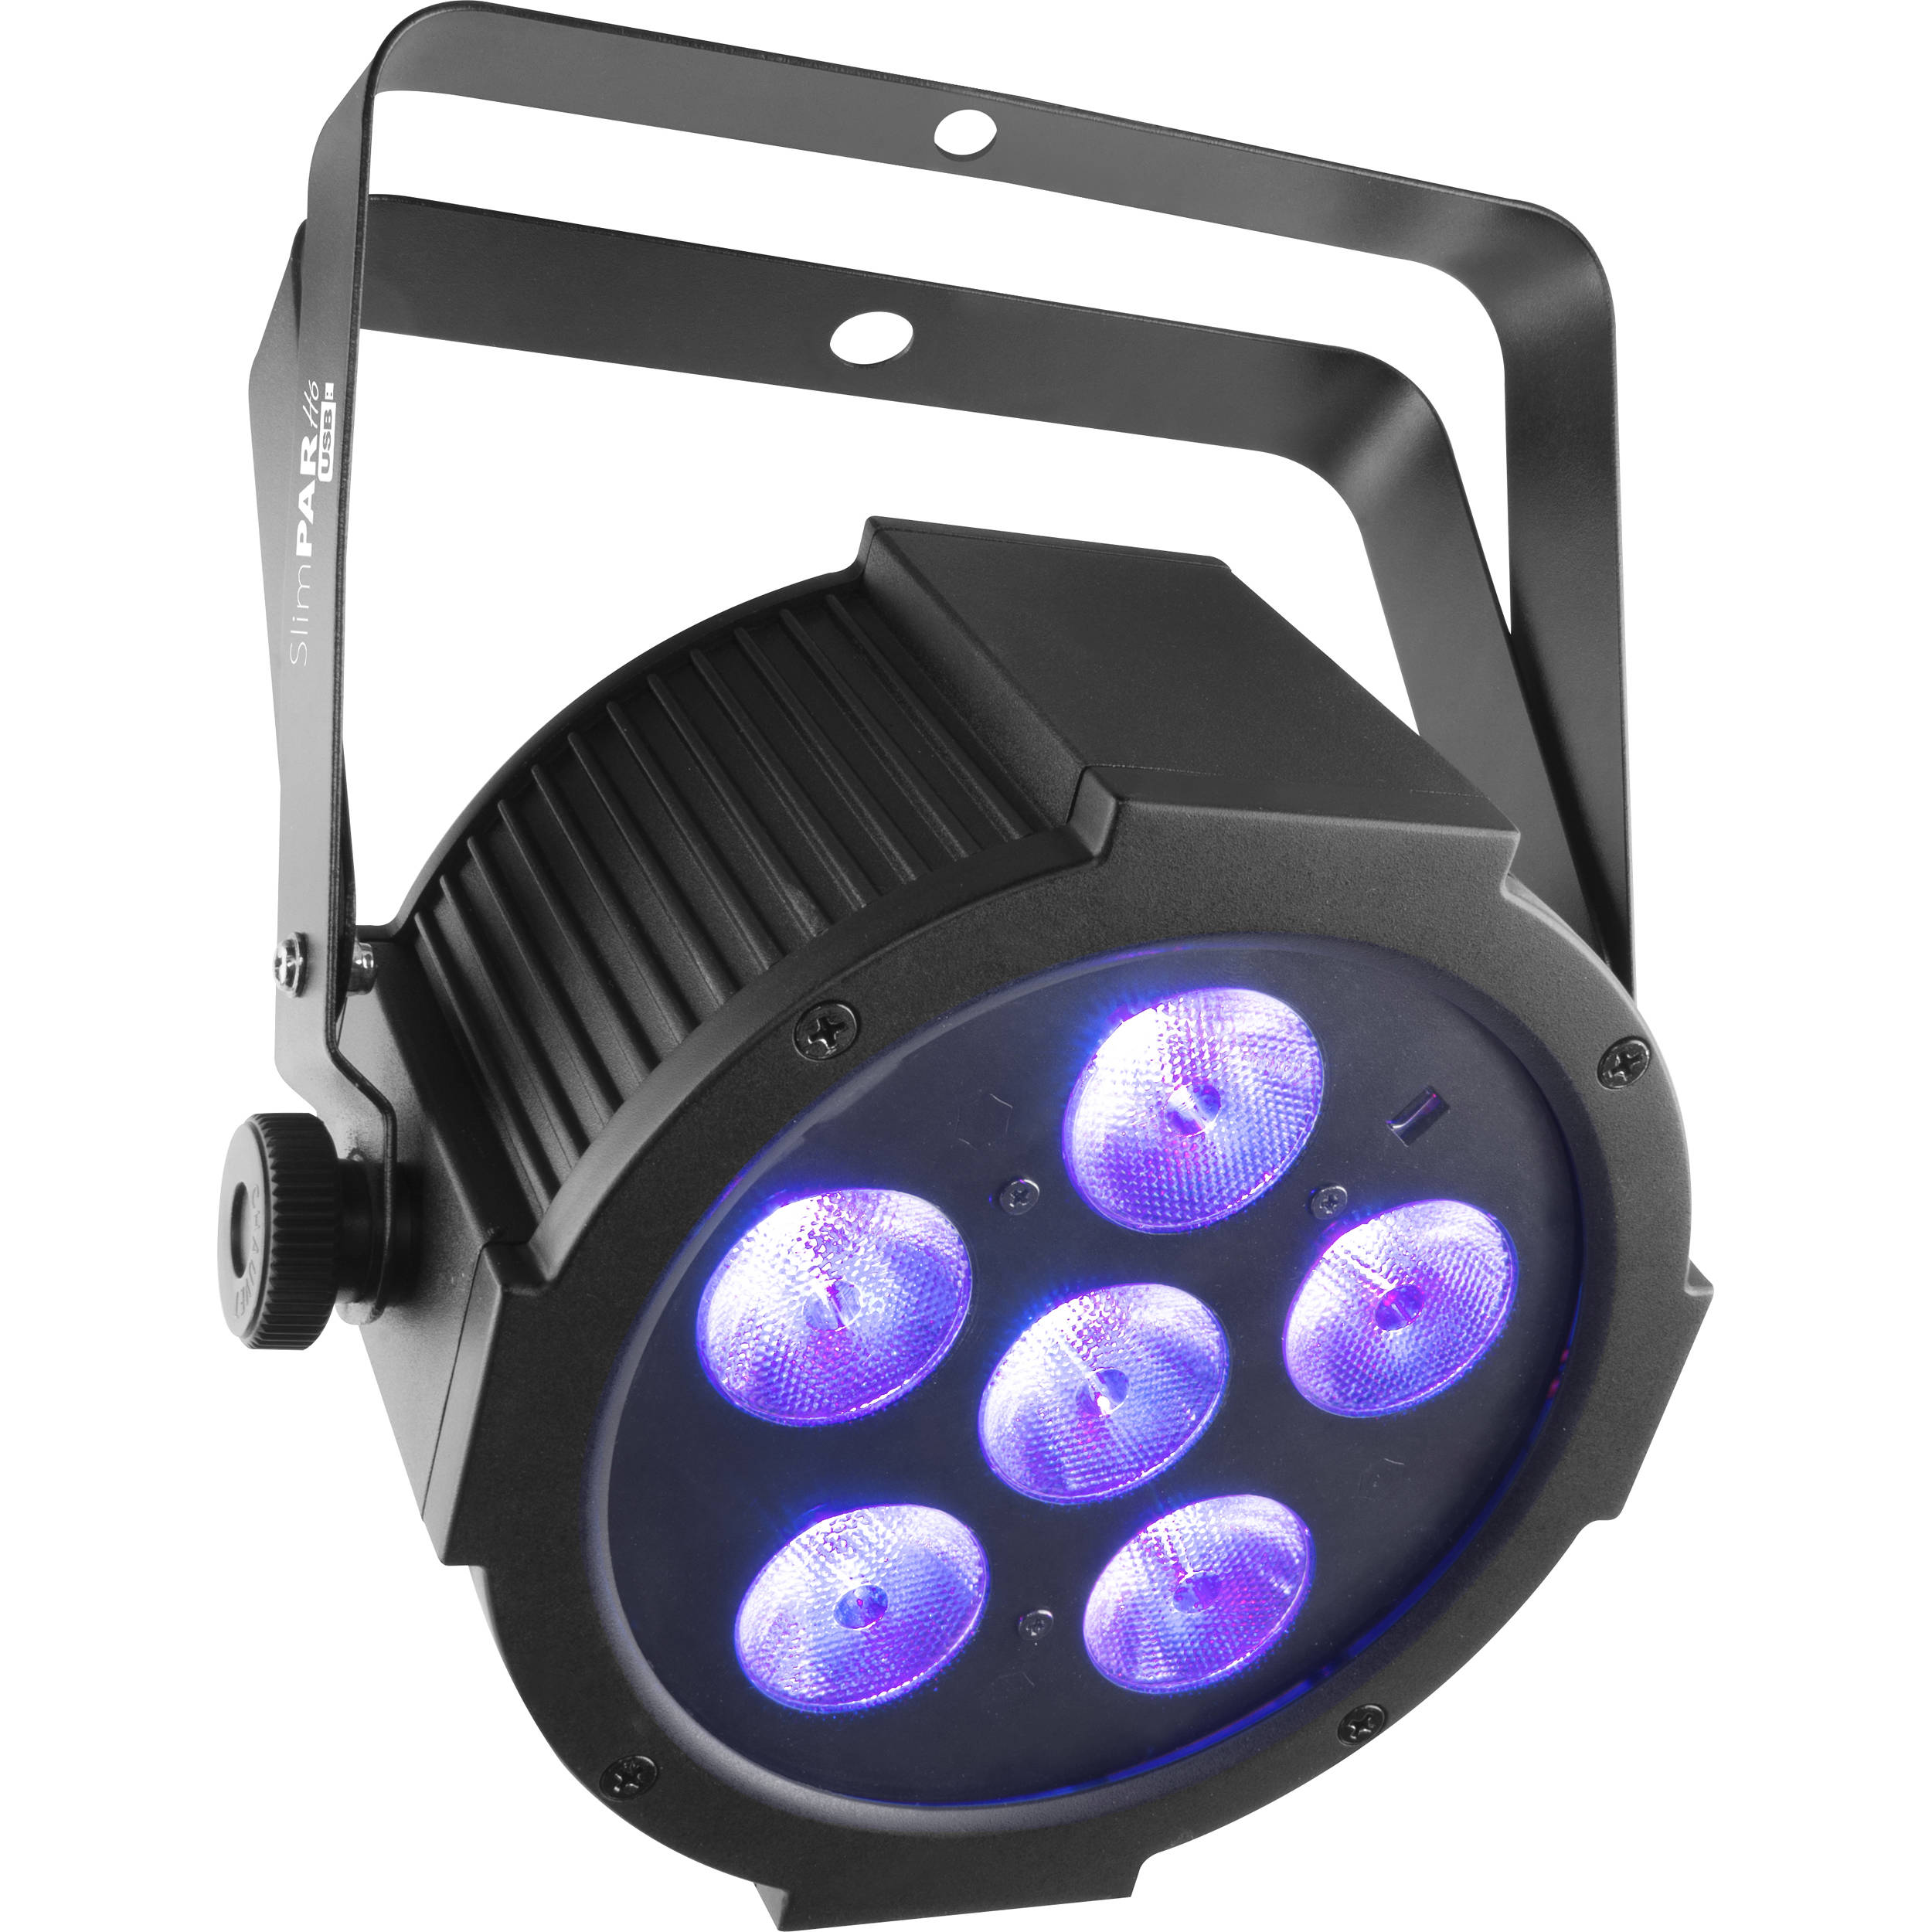 light rotosphere rgbw ball effect alt dj mirror lighting color led chauvet quad